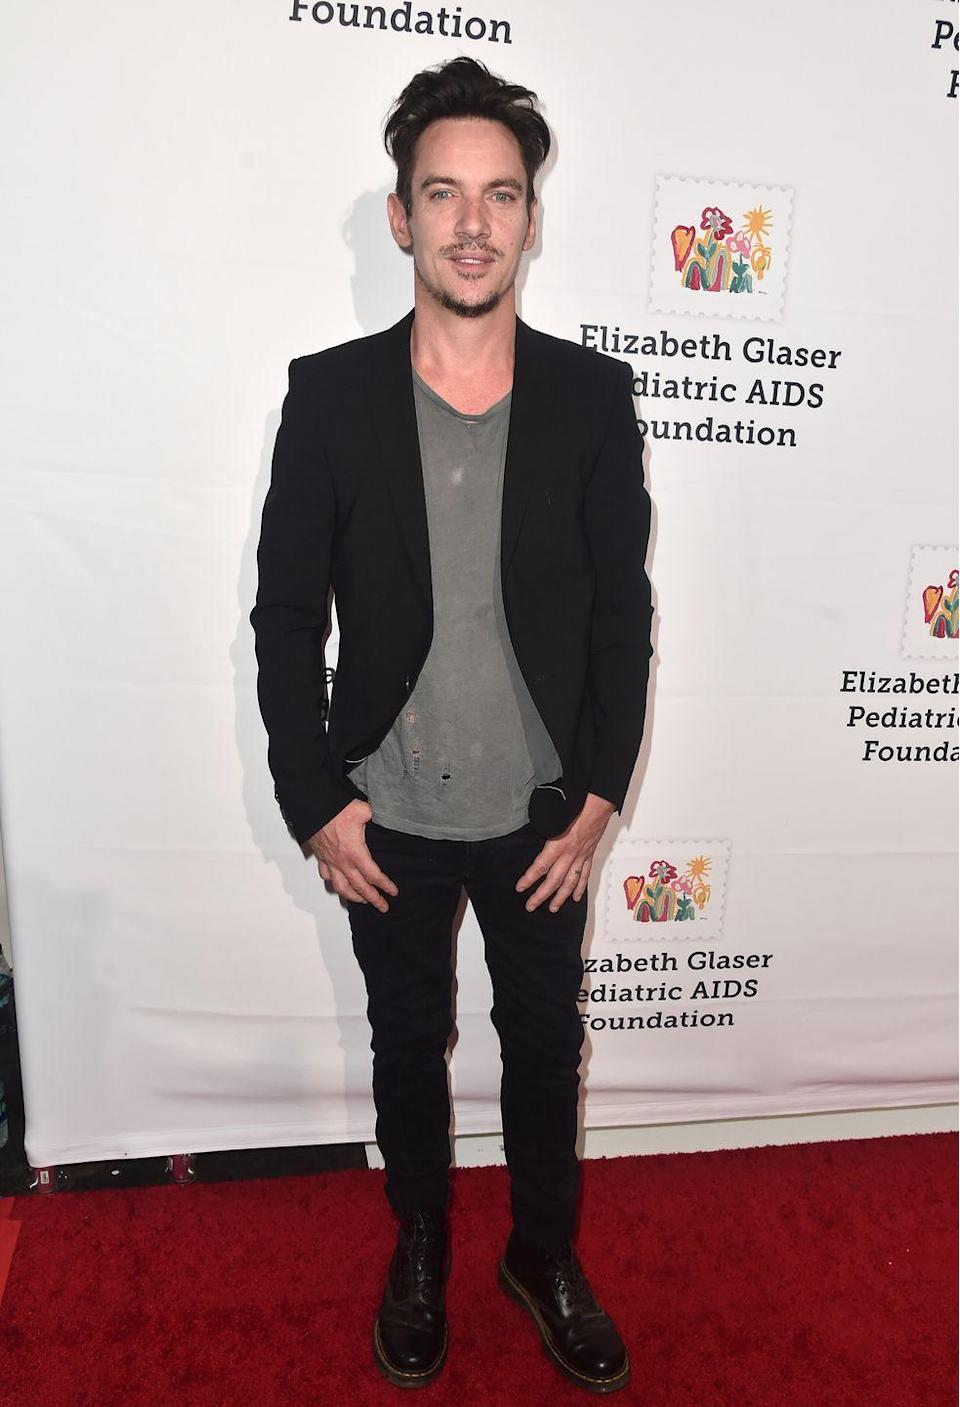 <p>Yet another Dubliner in our midst! Along with a modeling career, Rhys Meyers is most famous for appearing in projects such as <em>The Tudors</em>, <em>Elvis, </em>and <em>Bend It Like Beckham.</em></p>